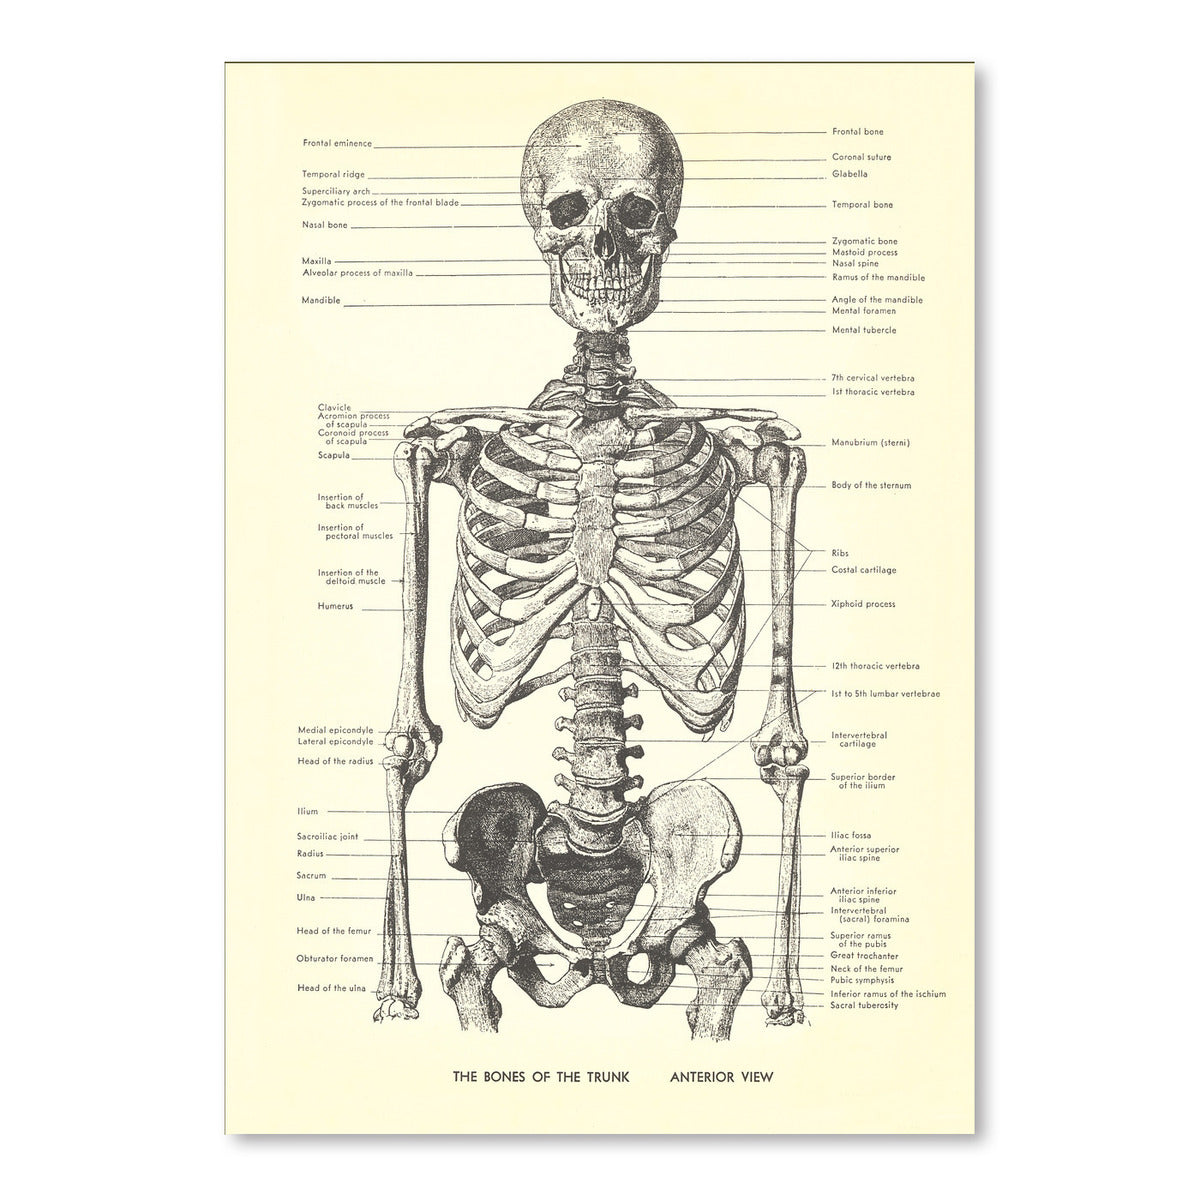 Bones Of The Trunk Anterior by Found Image Press Art Print - Art Print - Americanflat